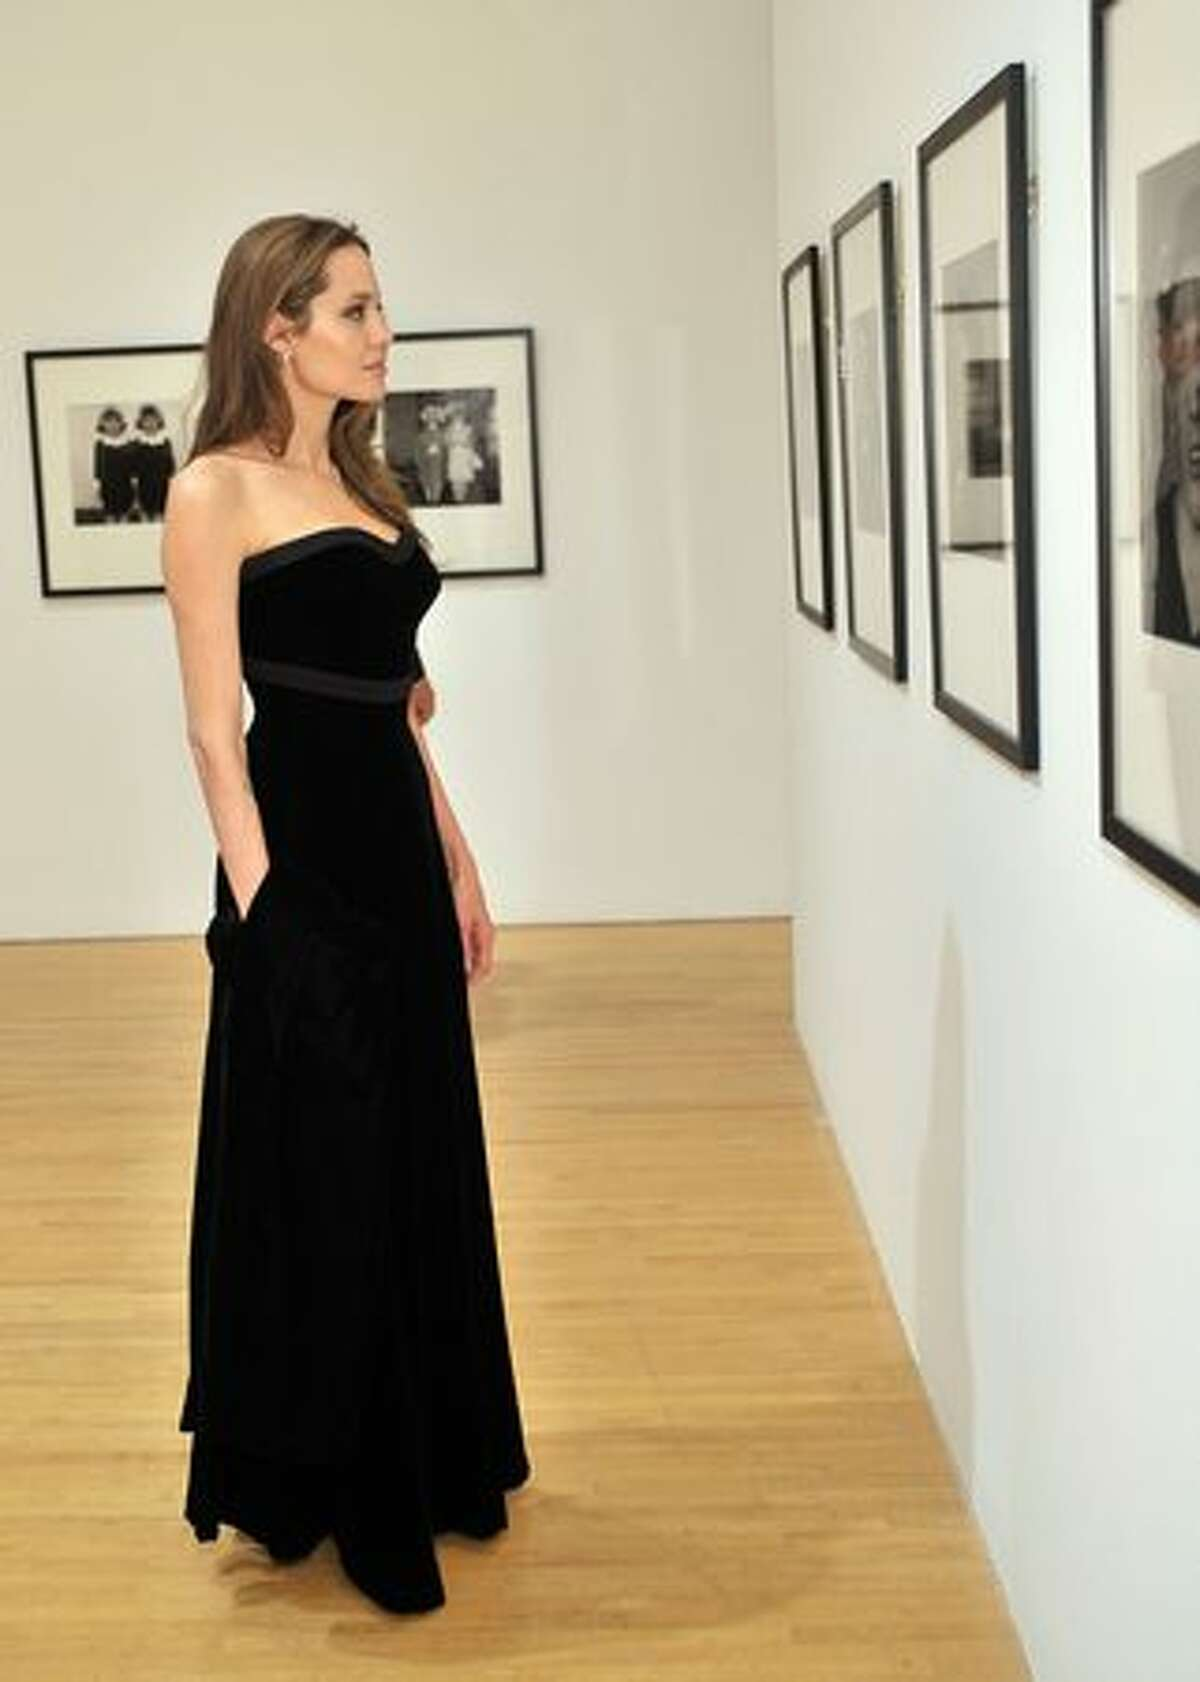 Actress Angelina Jolie attends the MOCA NEW 30th anniversary gala held at MOCA on Saturday in Los Angeles, California.